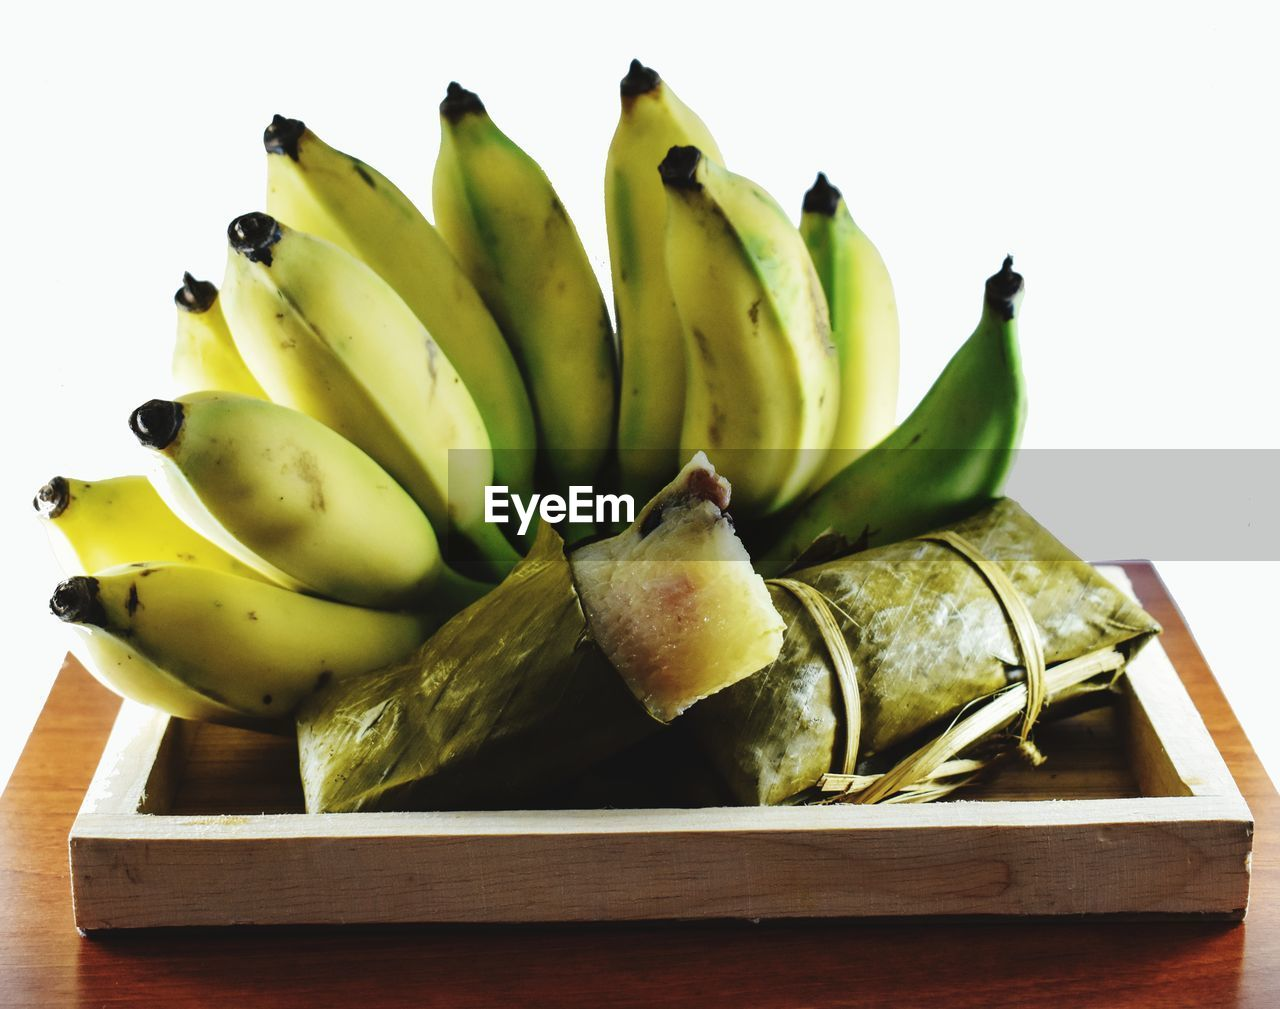 food and drink, healthy eating, still life, food, freshness, studio shot, wellbeing, banana, white background, indoors, fruit, close-up, no people, wood - material, table, group of objects, green color, large group of objects, cut out, ripe, tray